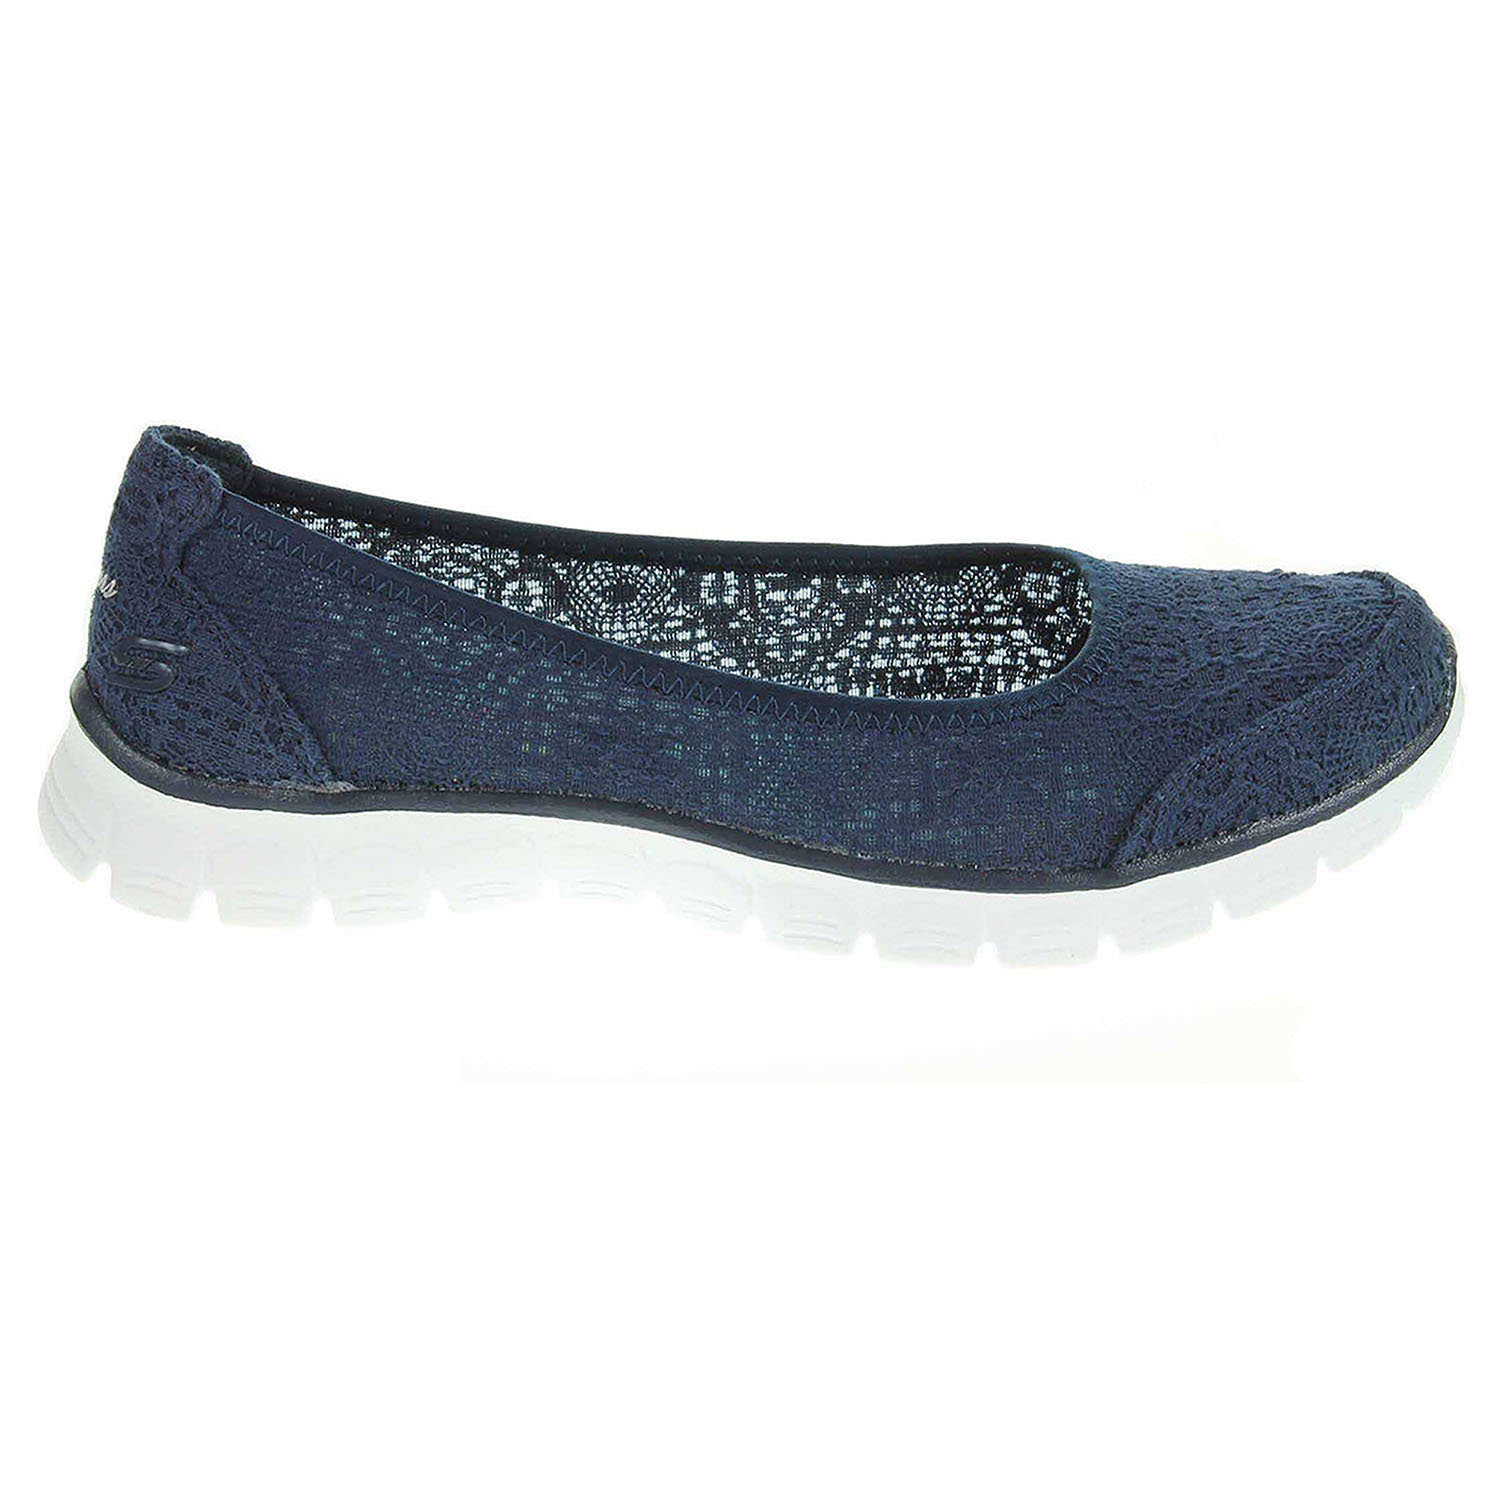 Ecco Skechers Ez Flex 3.0 - Beautify navy 23200830